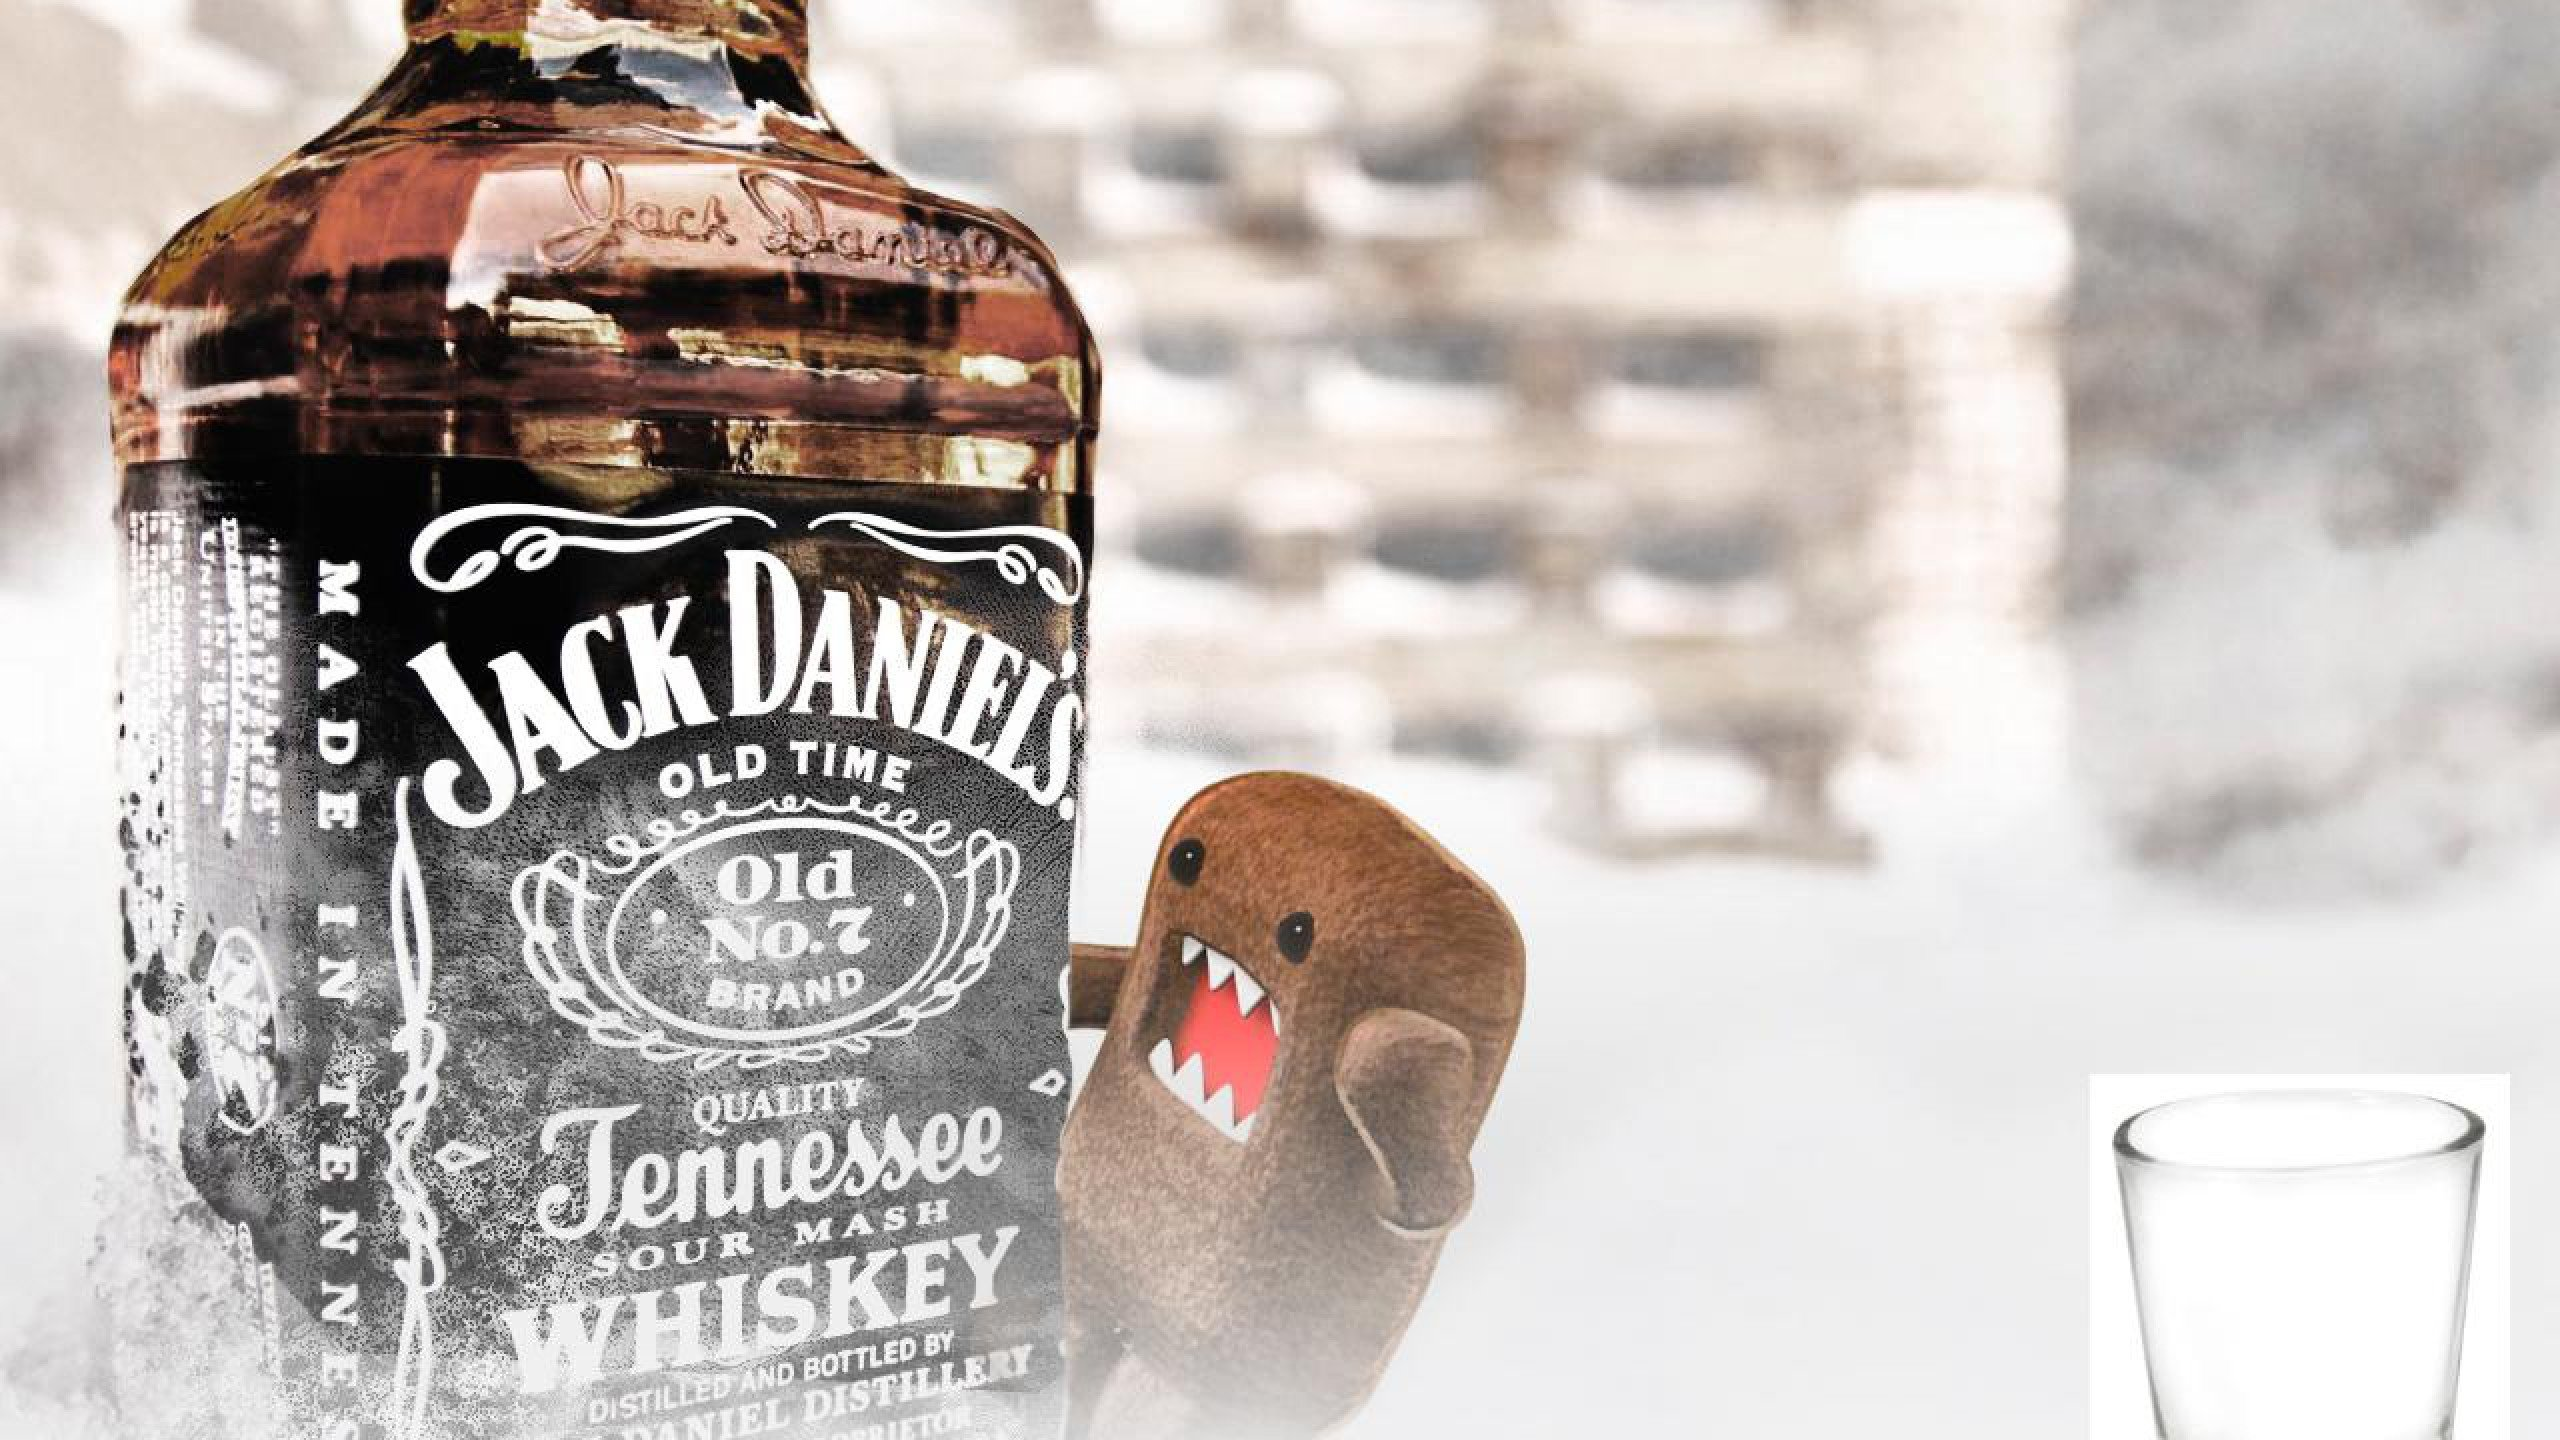 Jack daniels hd wallpapers backgrounds wallpaper 2560x1440 voltagebd Images